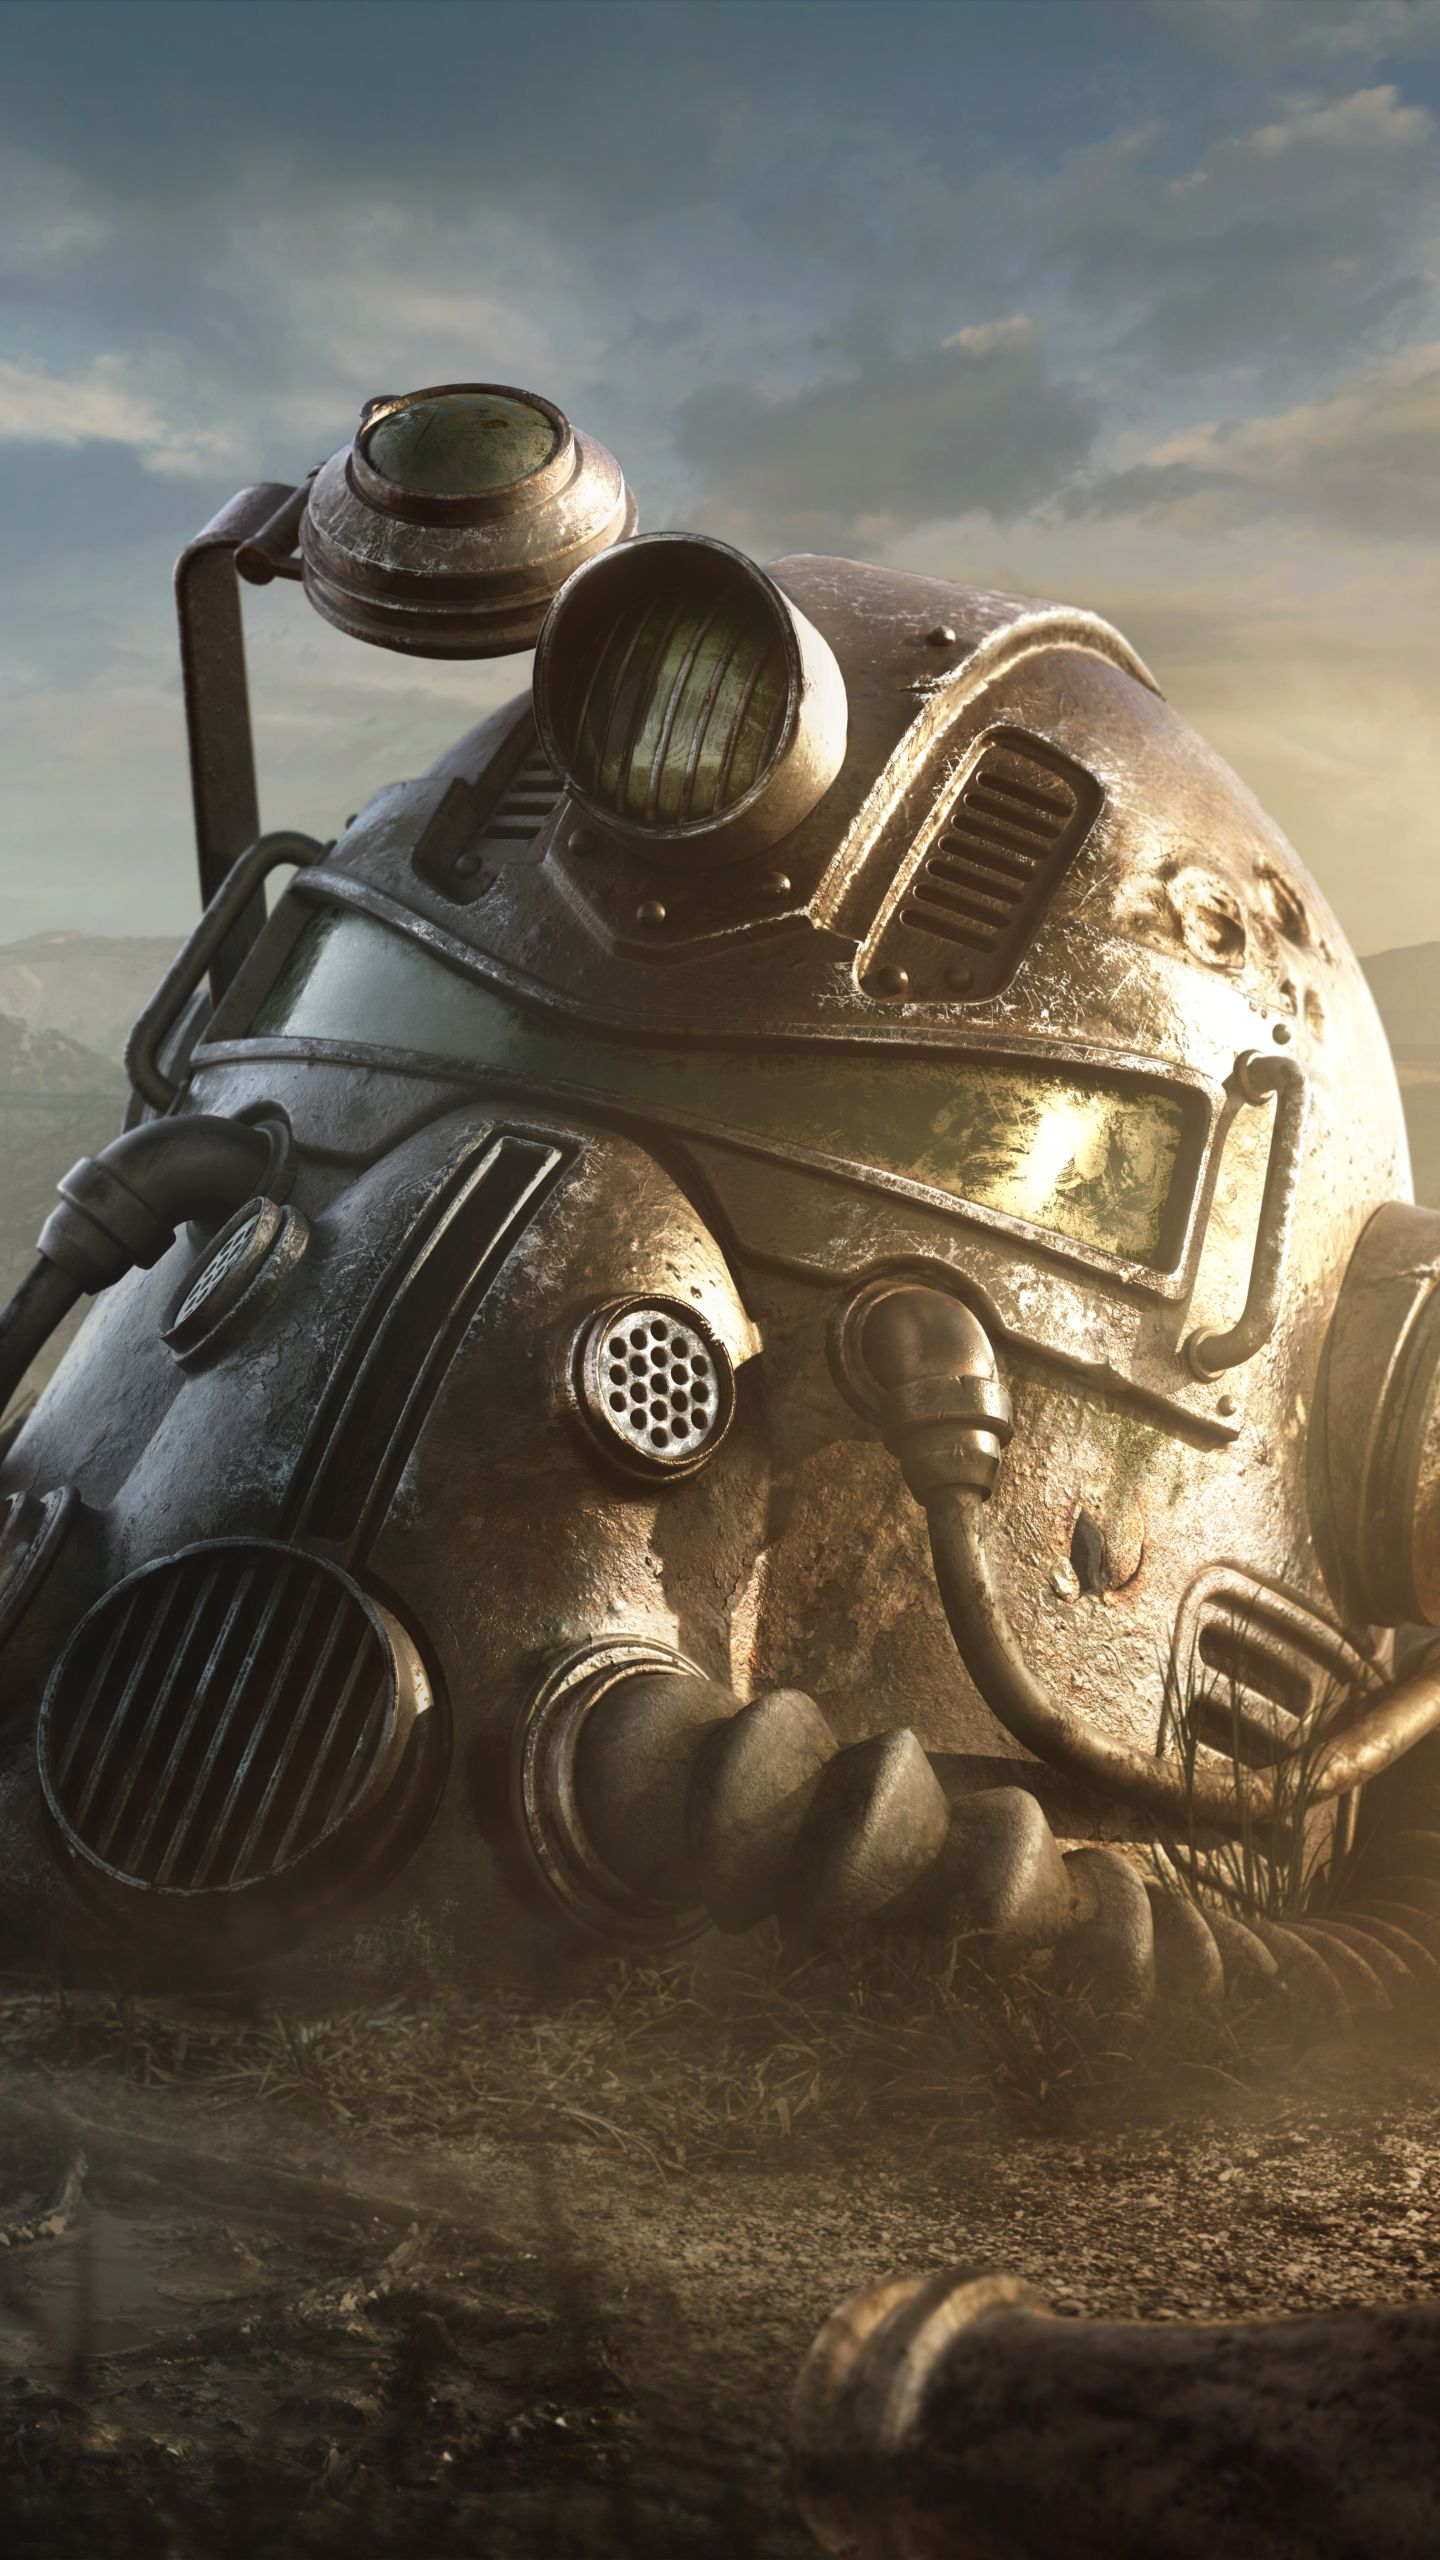 Pin By Alex Hmh The Highest Musical H On Wallpaper Iphone Fallout Wallpaper Iphone Wallpaper Fallout 4 Wallpapers